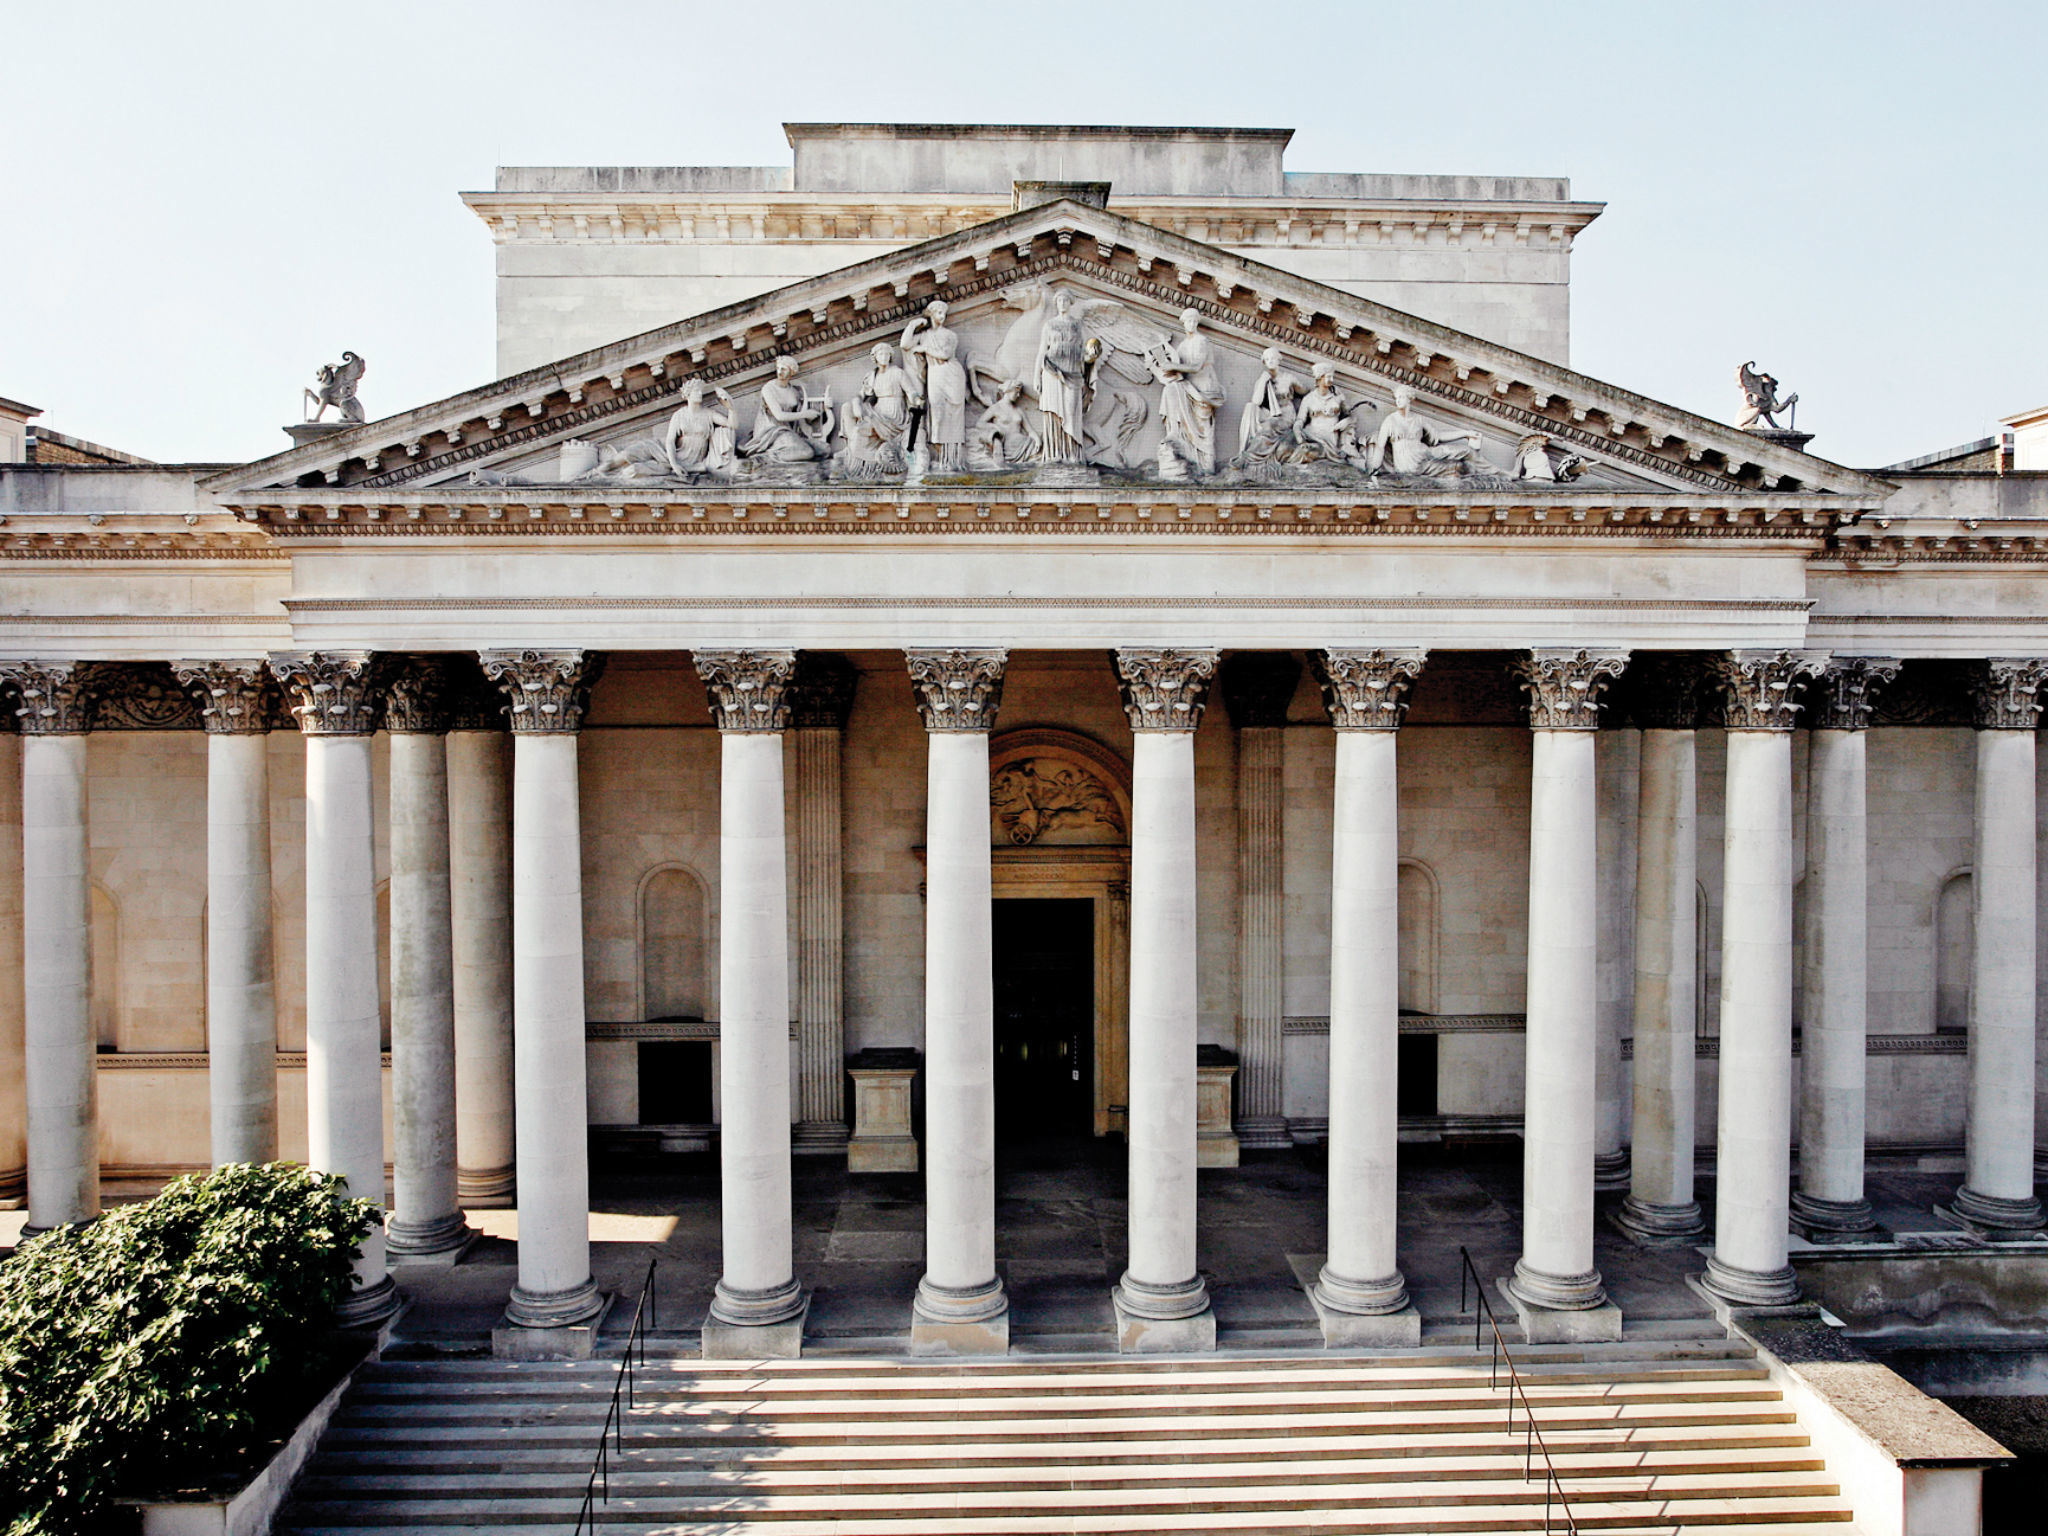 The Fitzwilliam Museum in Cambridge